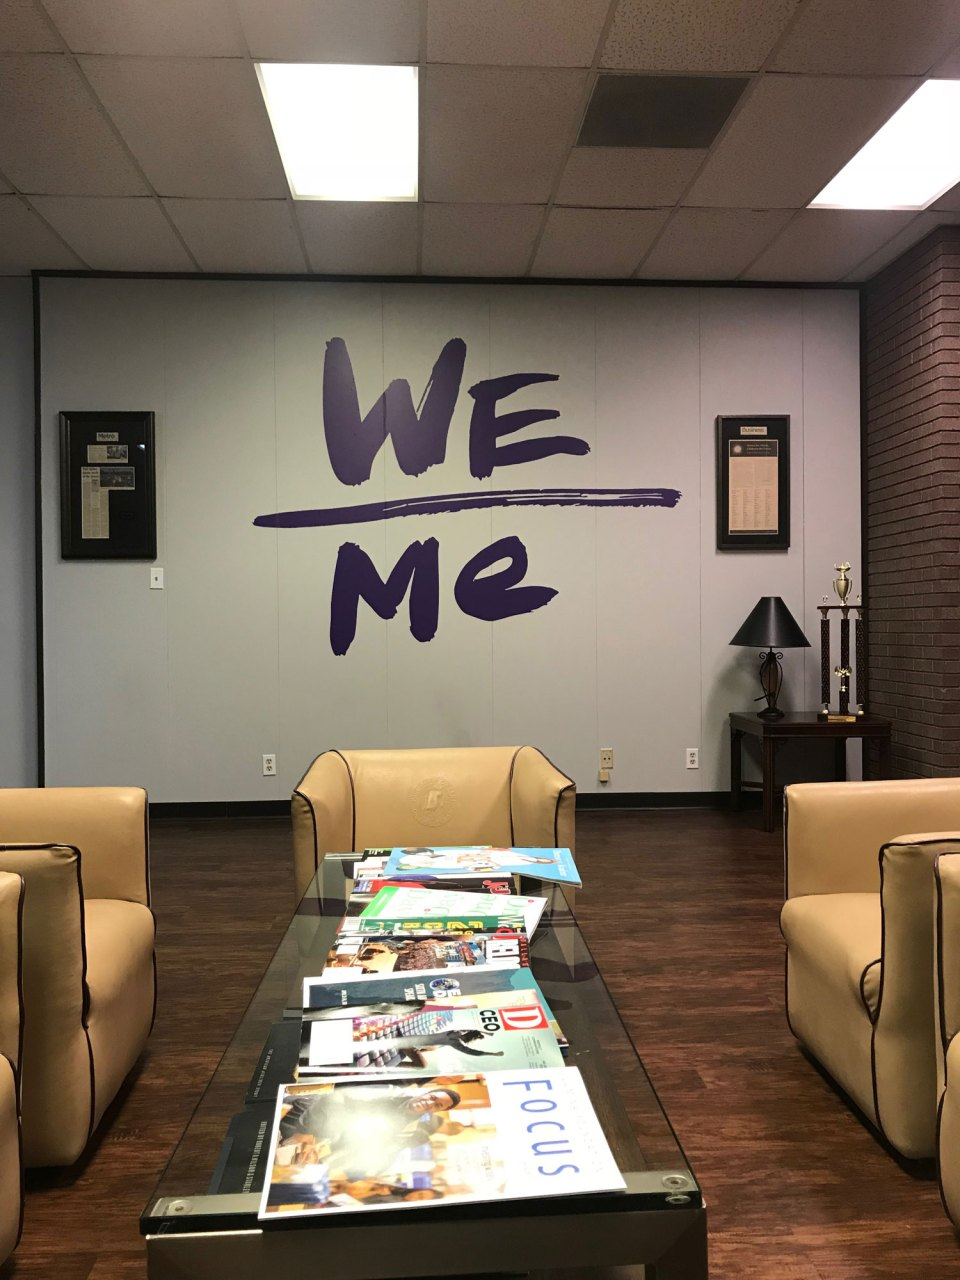 The Paul Quinn College mantra – We over me – is painted at various places around campus.